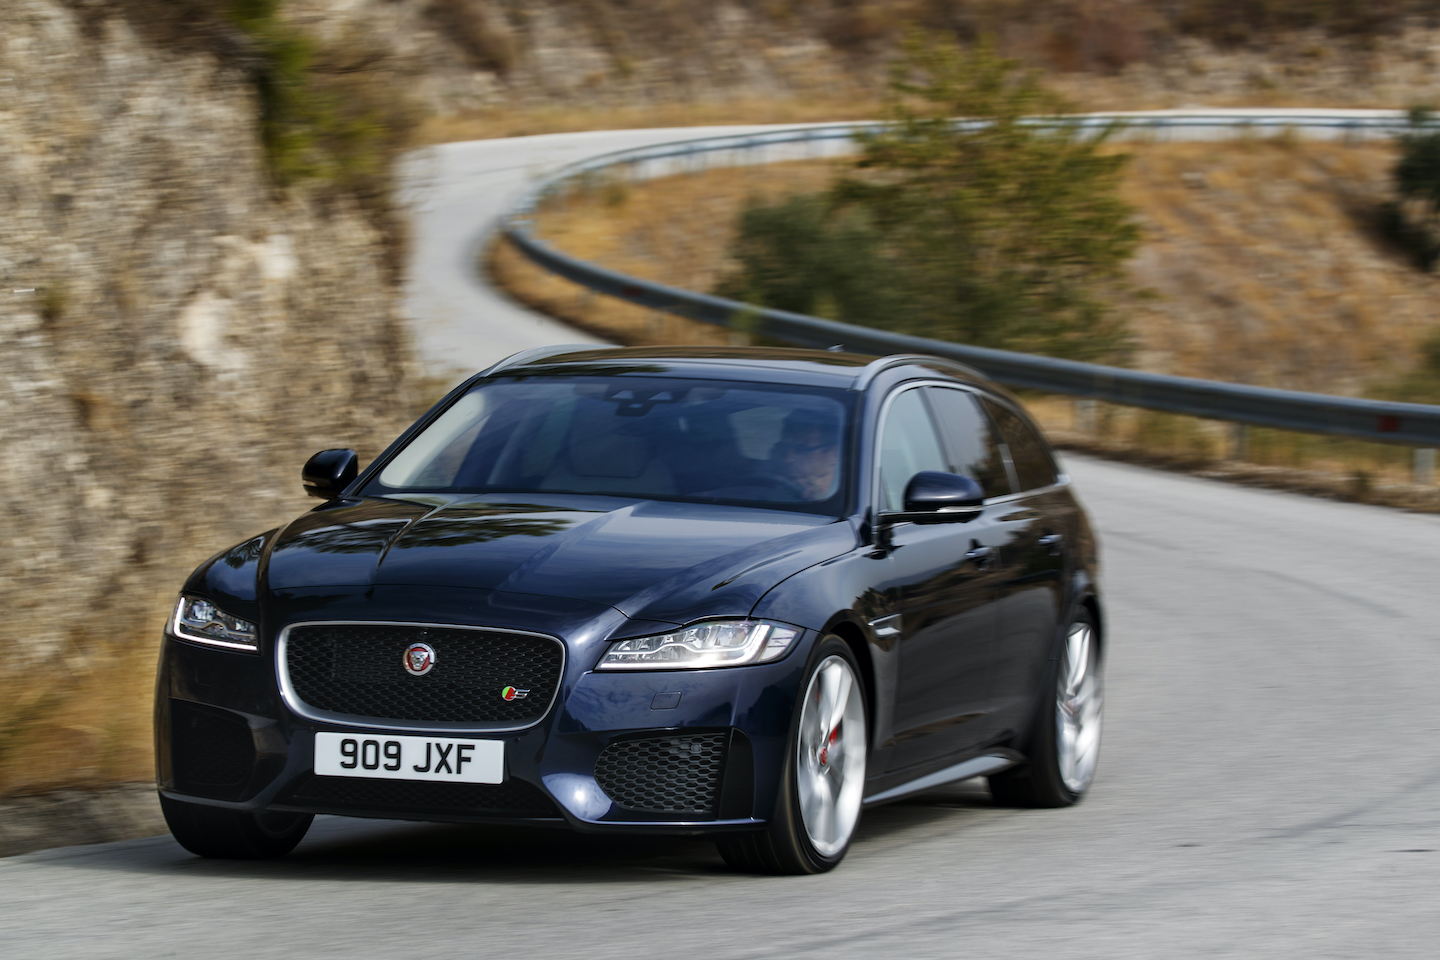 spy shots of the 2021 jaguar xf sportbrake remind us that